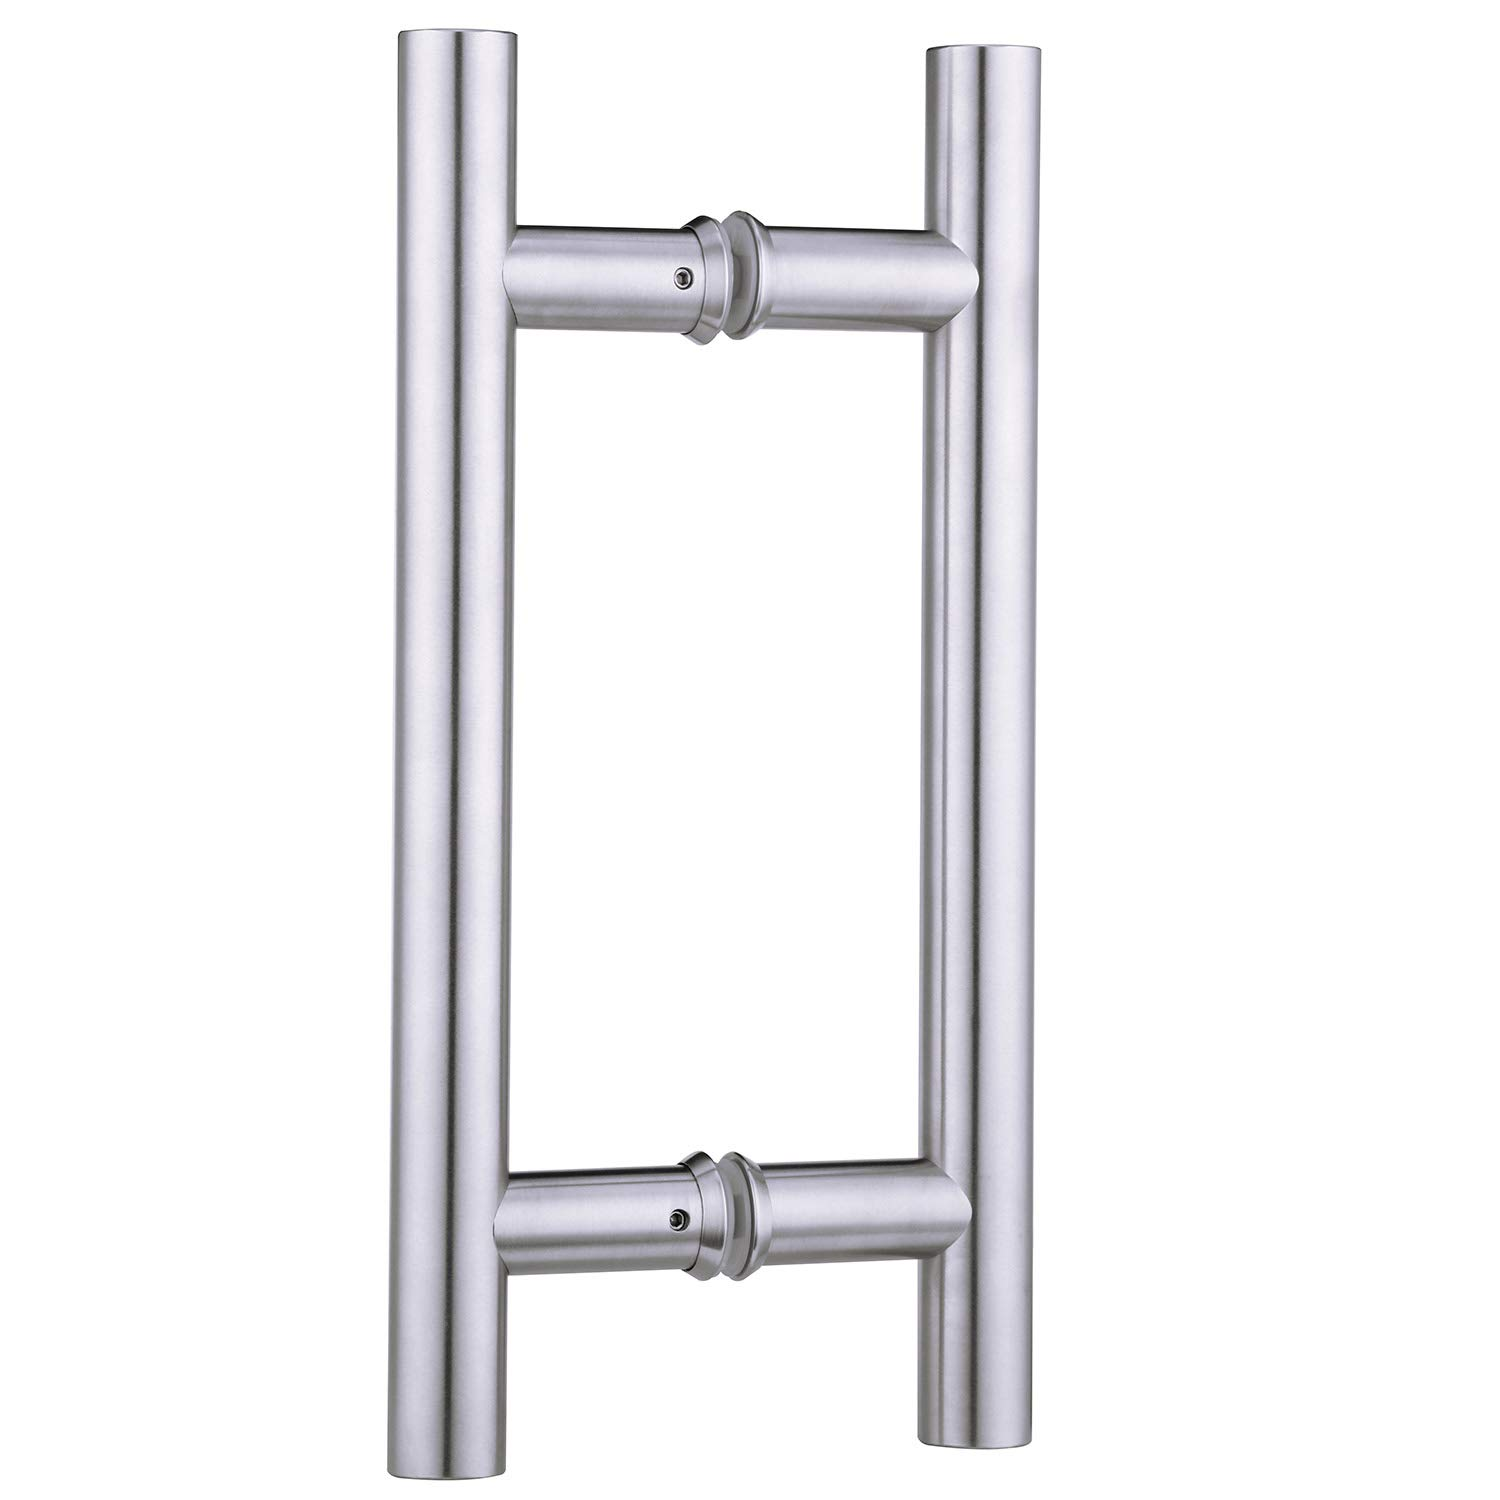 EaseLife 12 Inch Door Handle,Double-Side Door Handle Bar to Bar,H-Shape,Stainless Steel,Sturdy,Round,for Glass Door and Wooden Door,Apply for Interior and Exterior